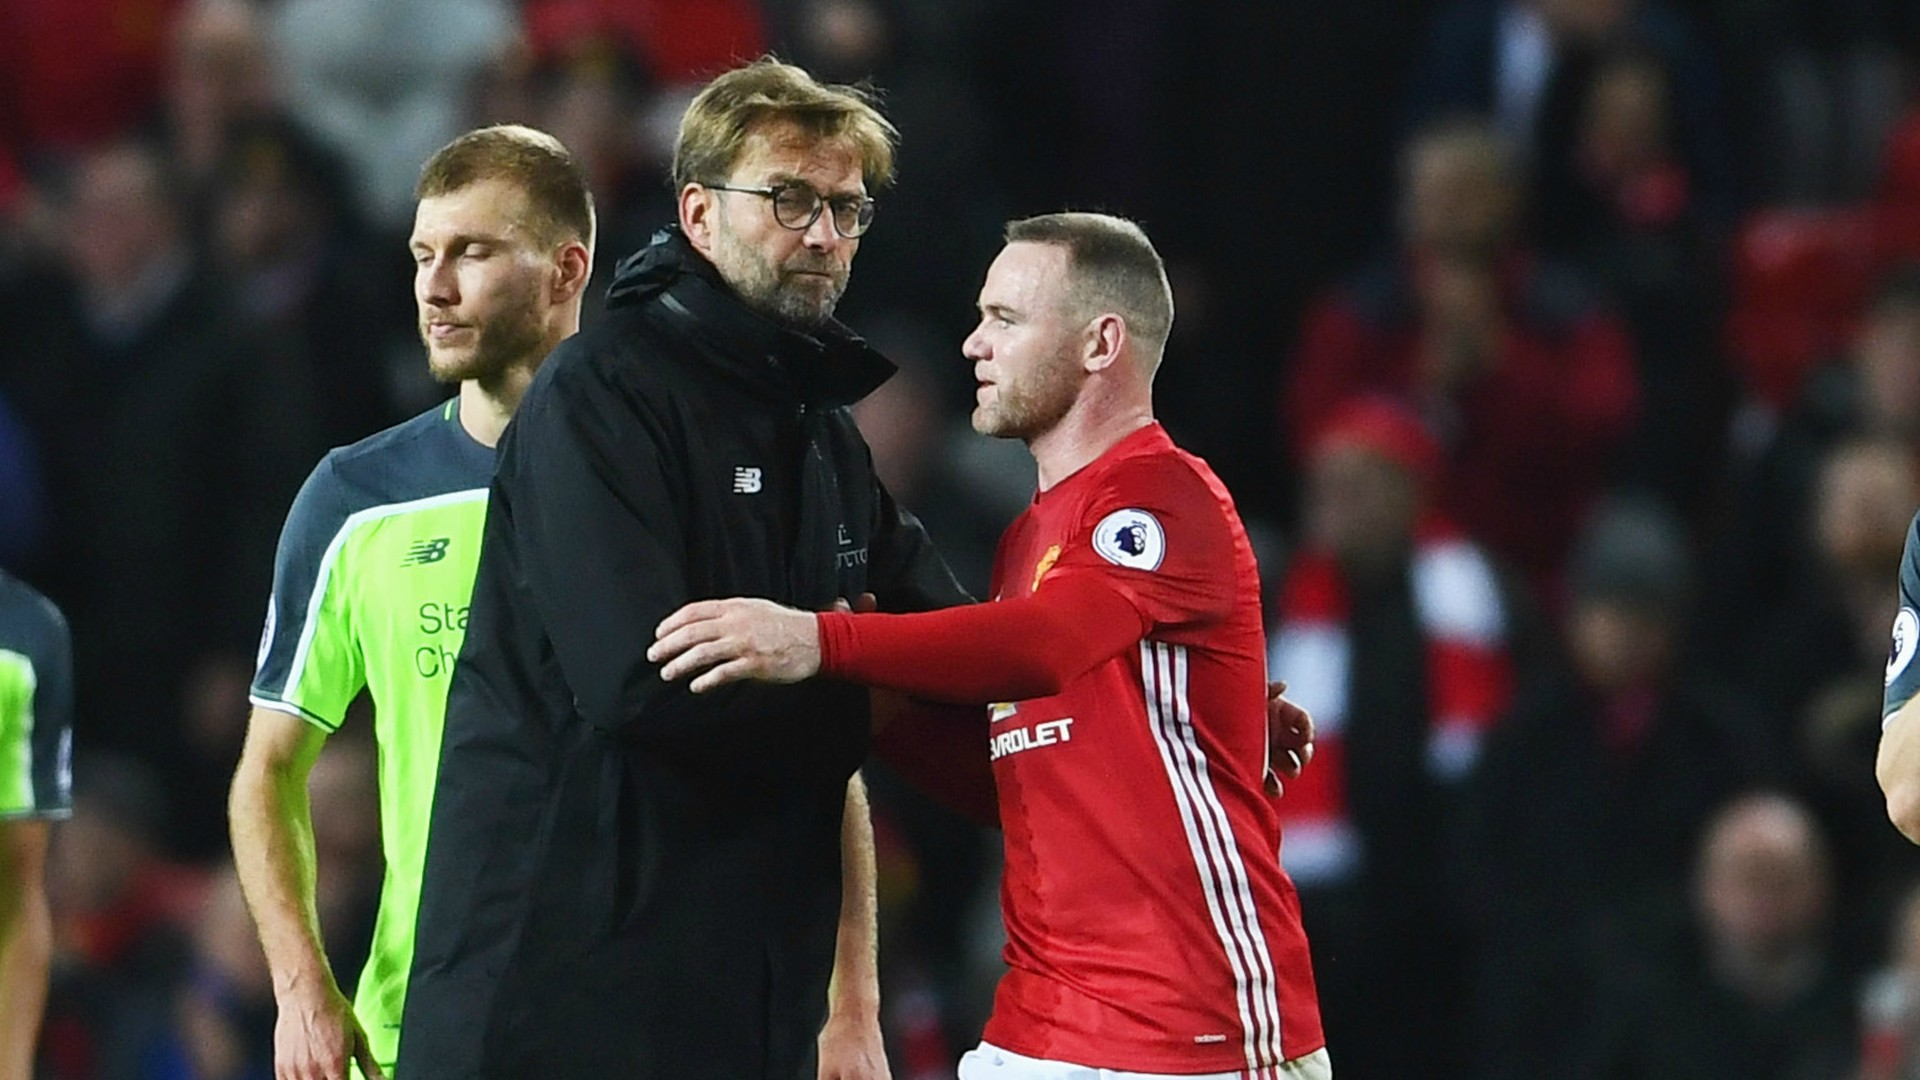 Ex-Man United and Everton forward Wayne Rooney hails Klopp